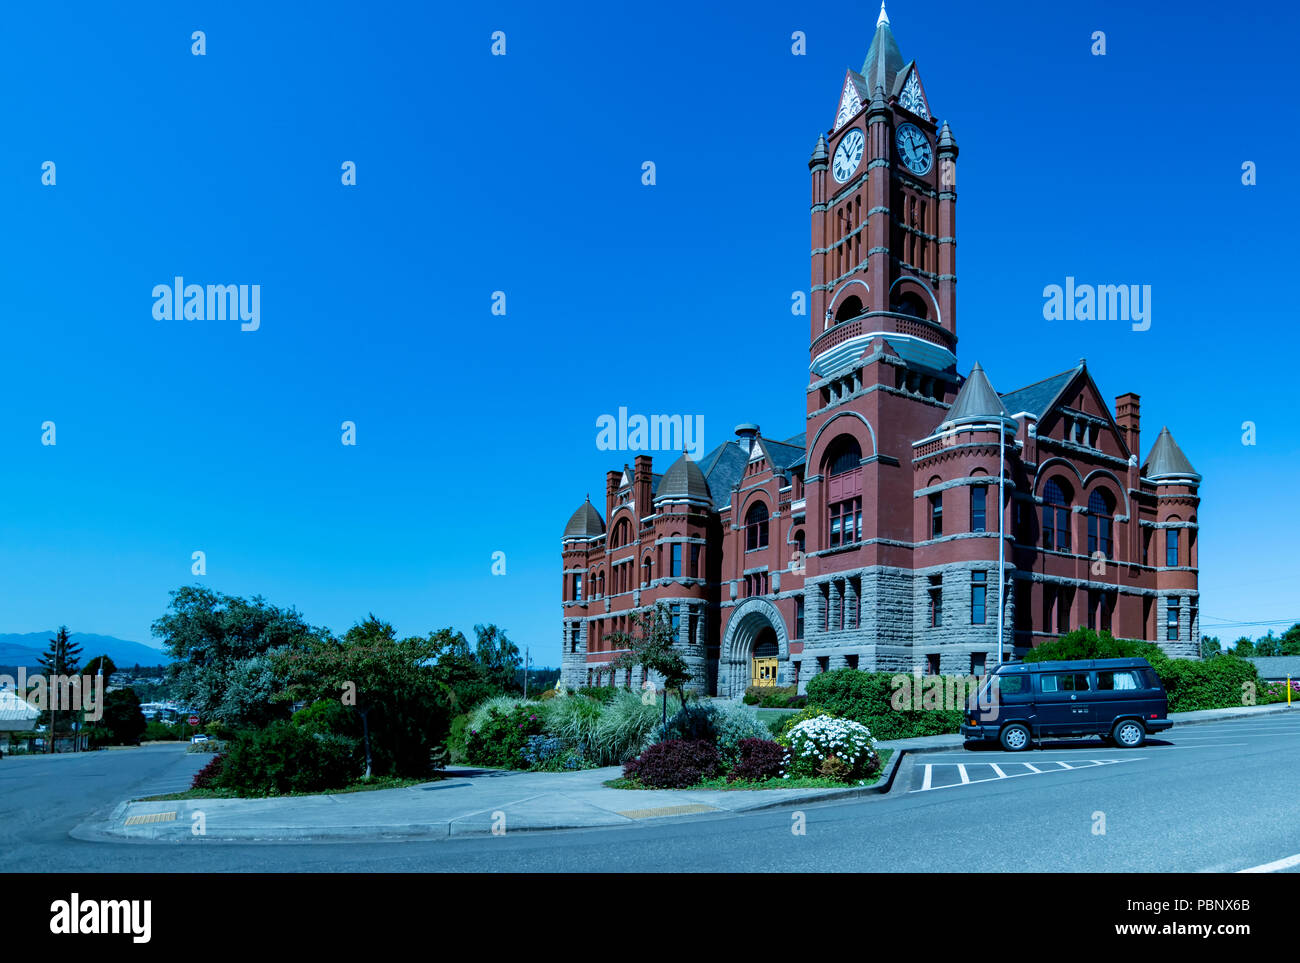 Jefferson County Courthouse 3. Built in red brick Romanesque Revival style in 1892 by Architect W. A. Ritchie. Port Townsend, Washington, USA - Stock Image